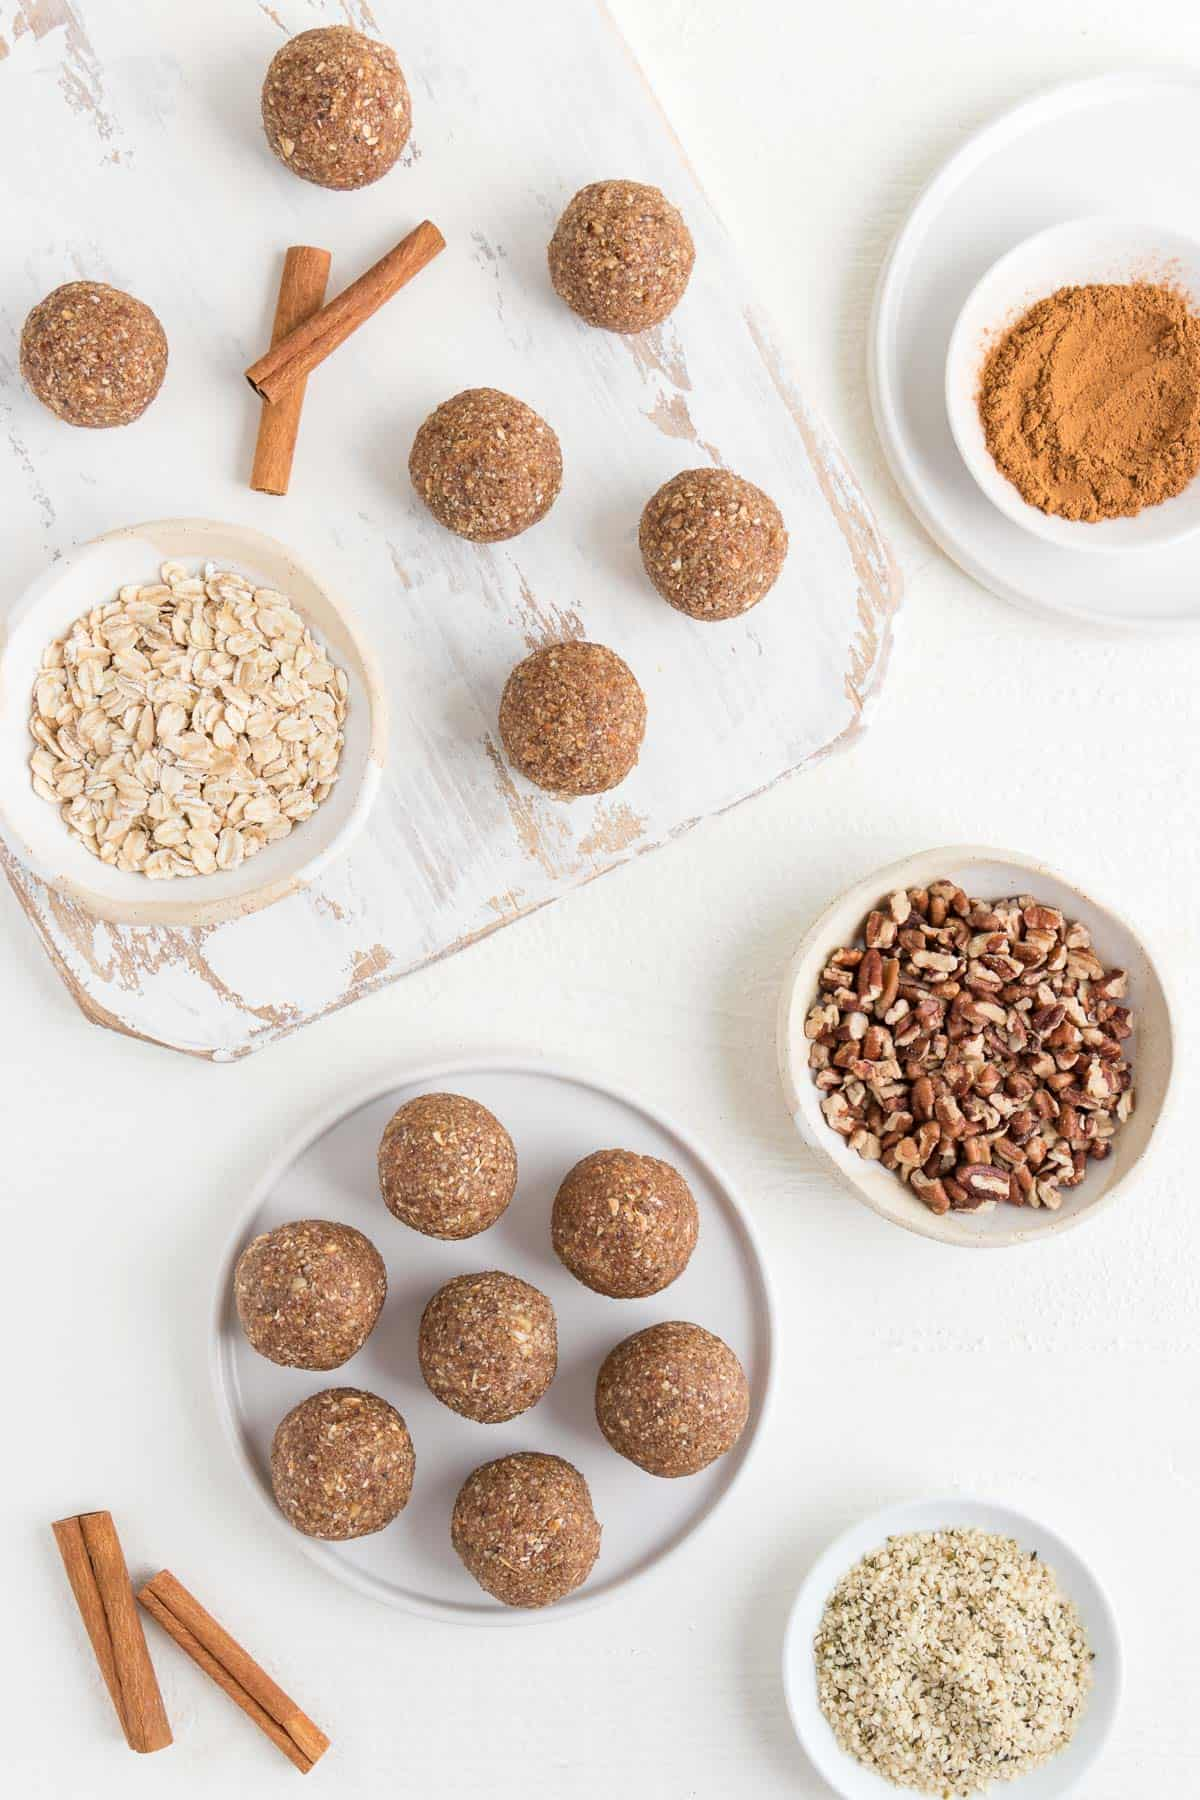 pecan pie bliss balls with rolled oats, pecans, cinnamon, and hemp seeds